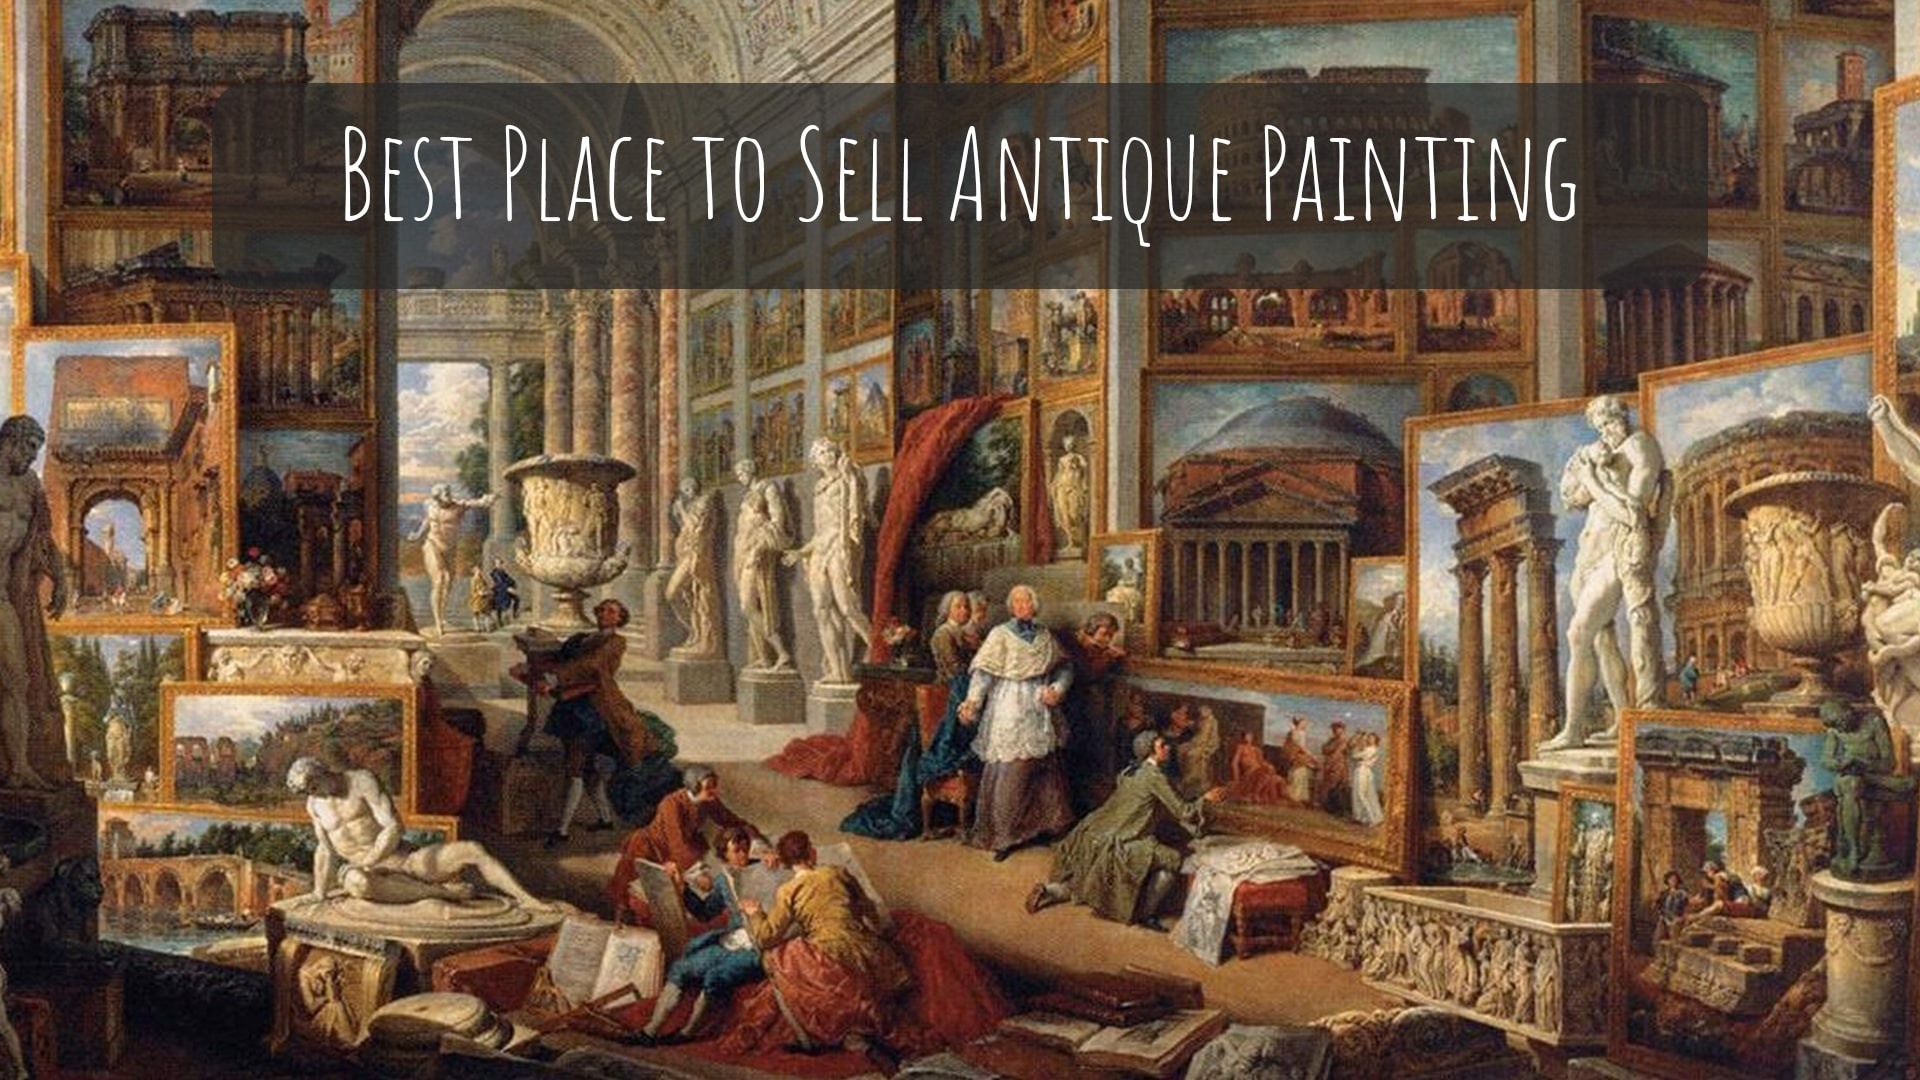 Antique Painting-AAB